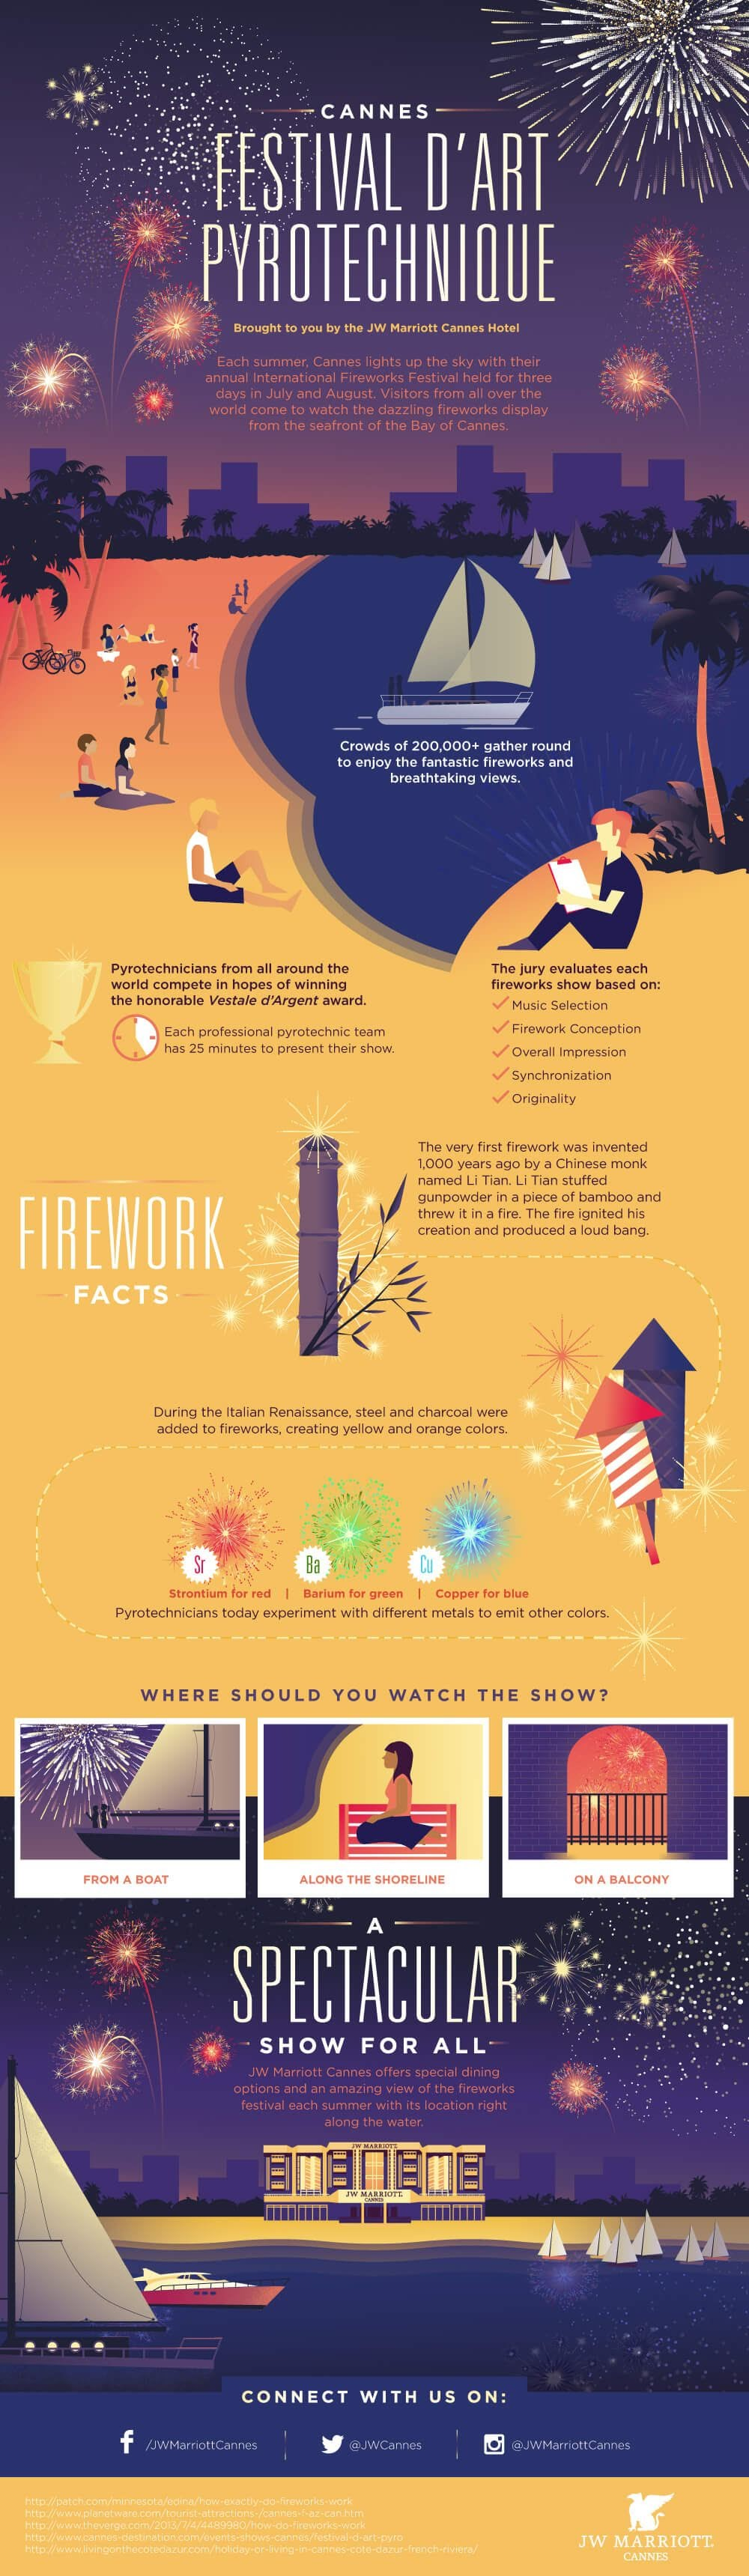 Festival D'art pyrotechnique cannes #infographic